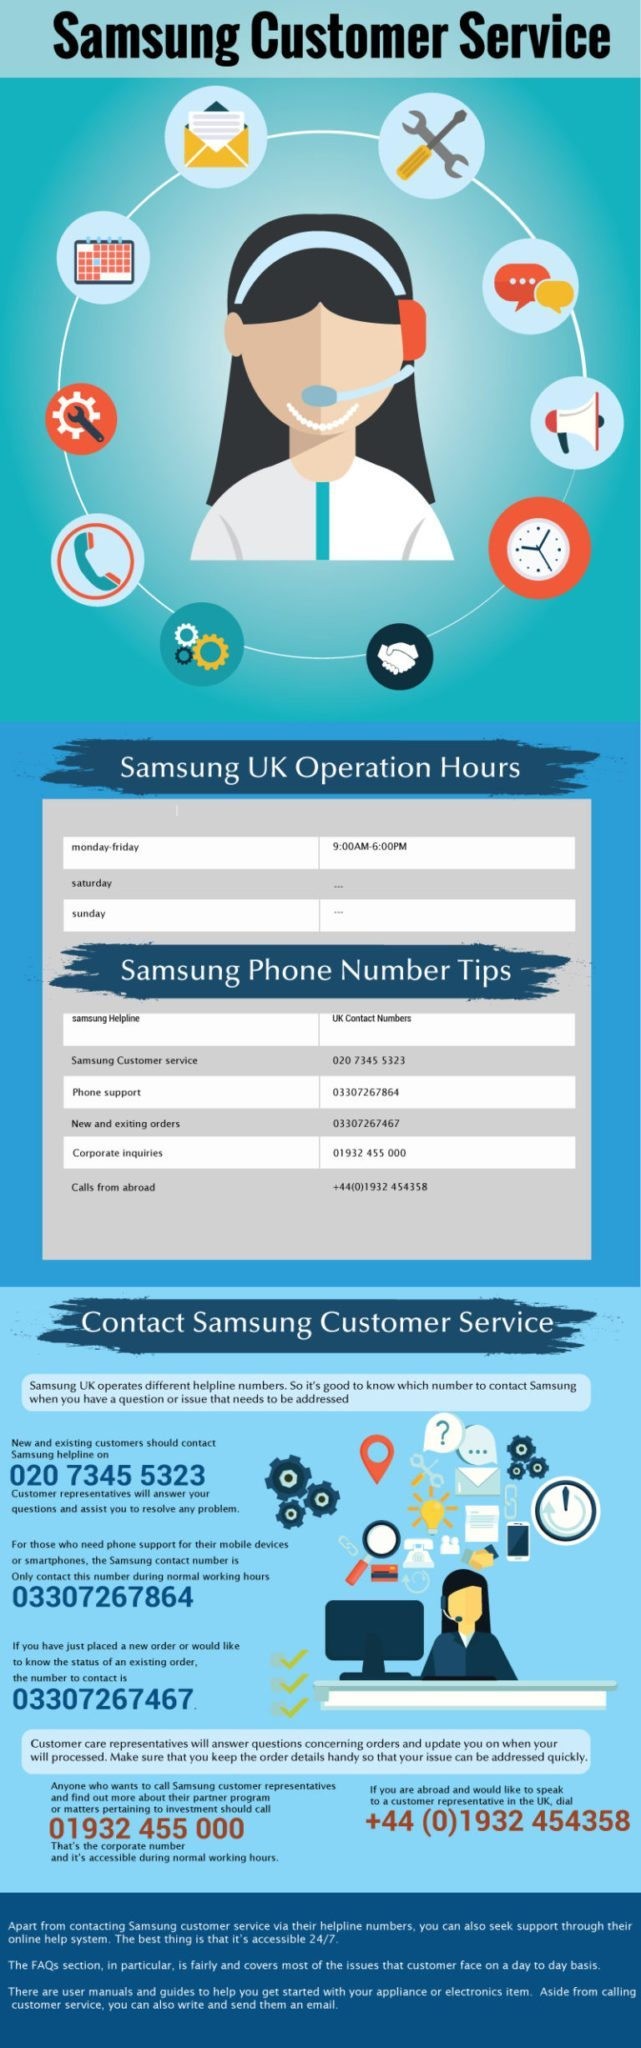 Samsung Customer Service Phone Numbers